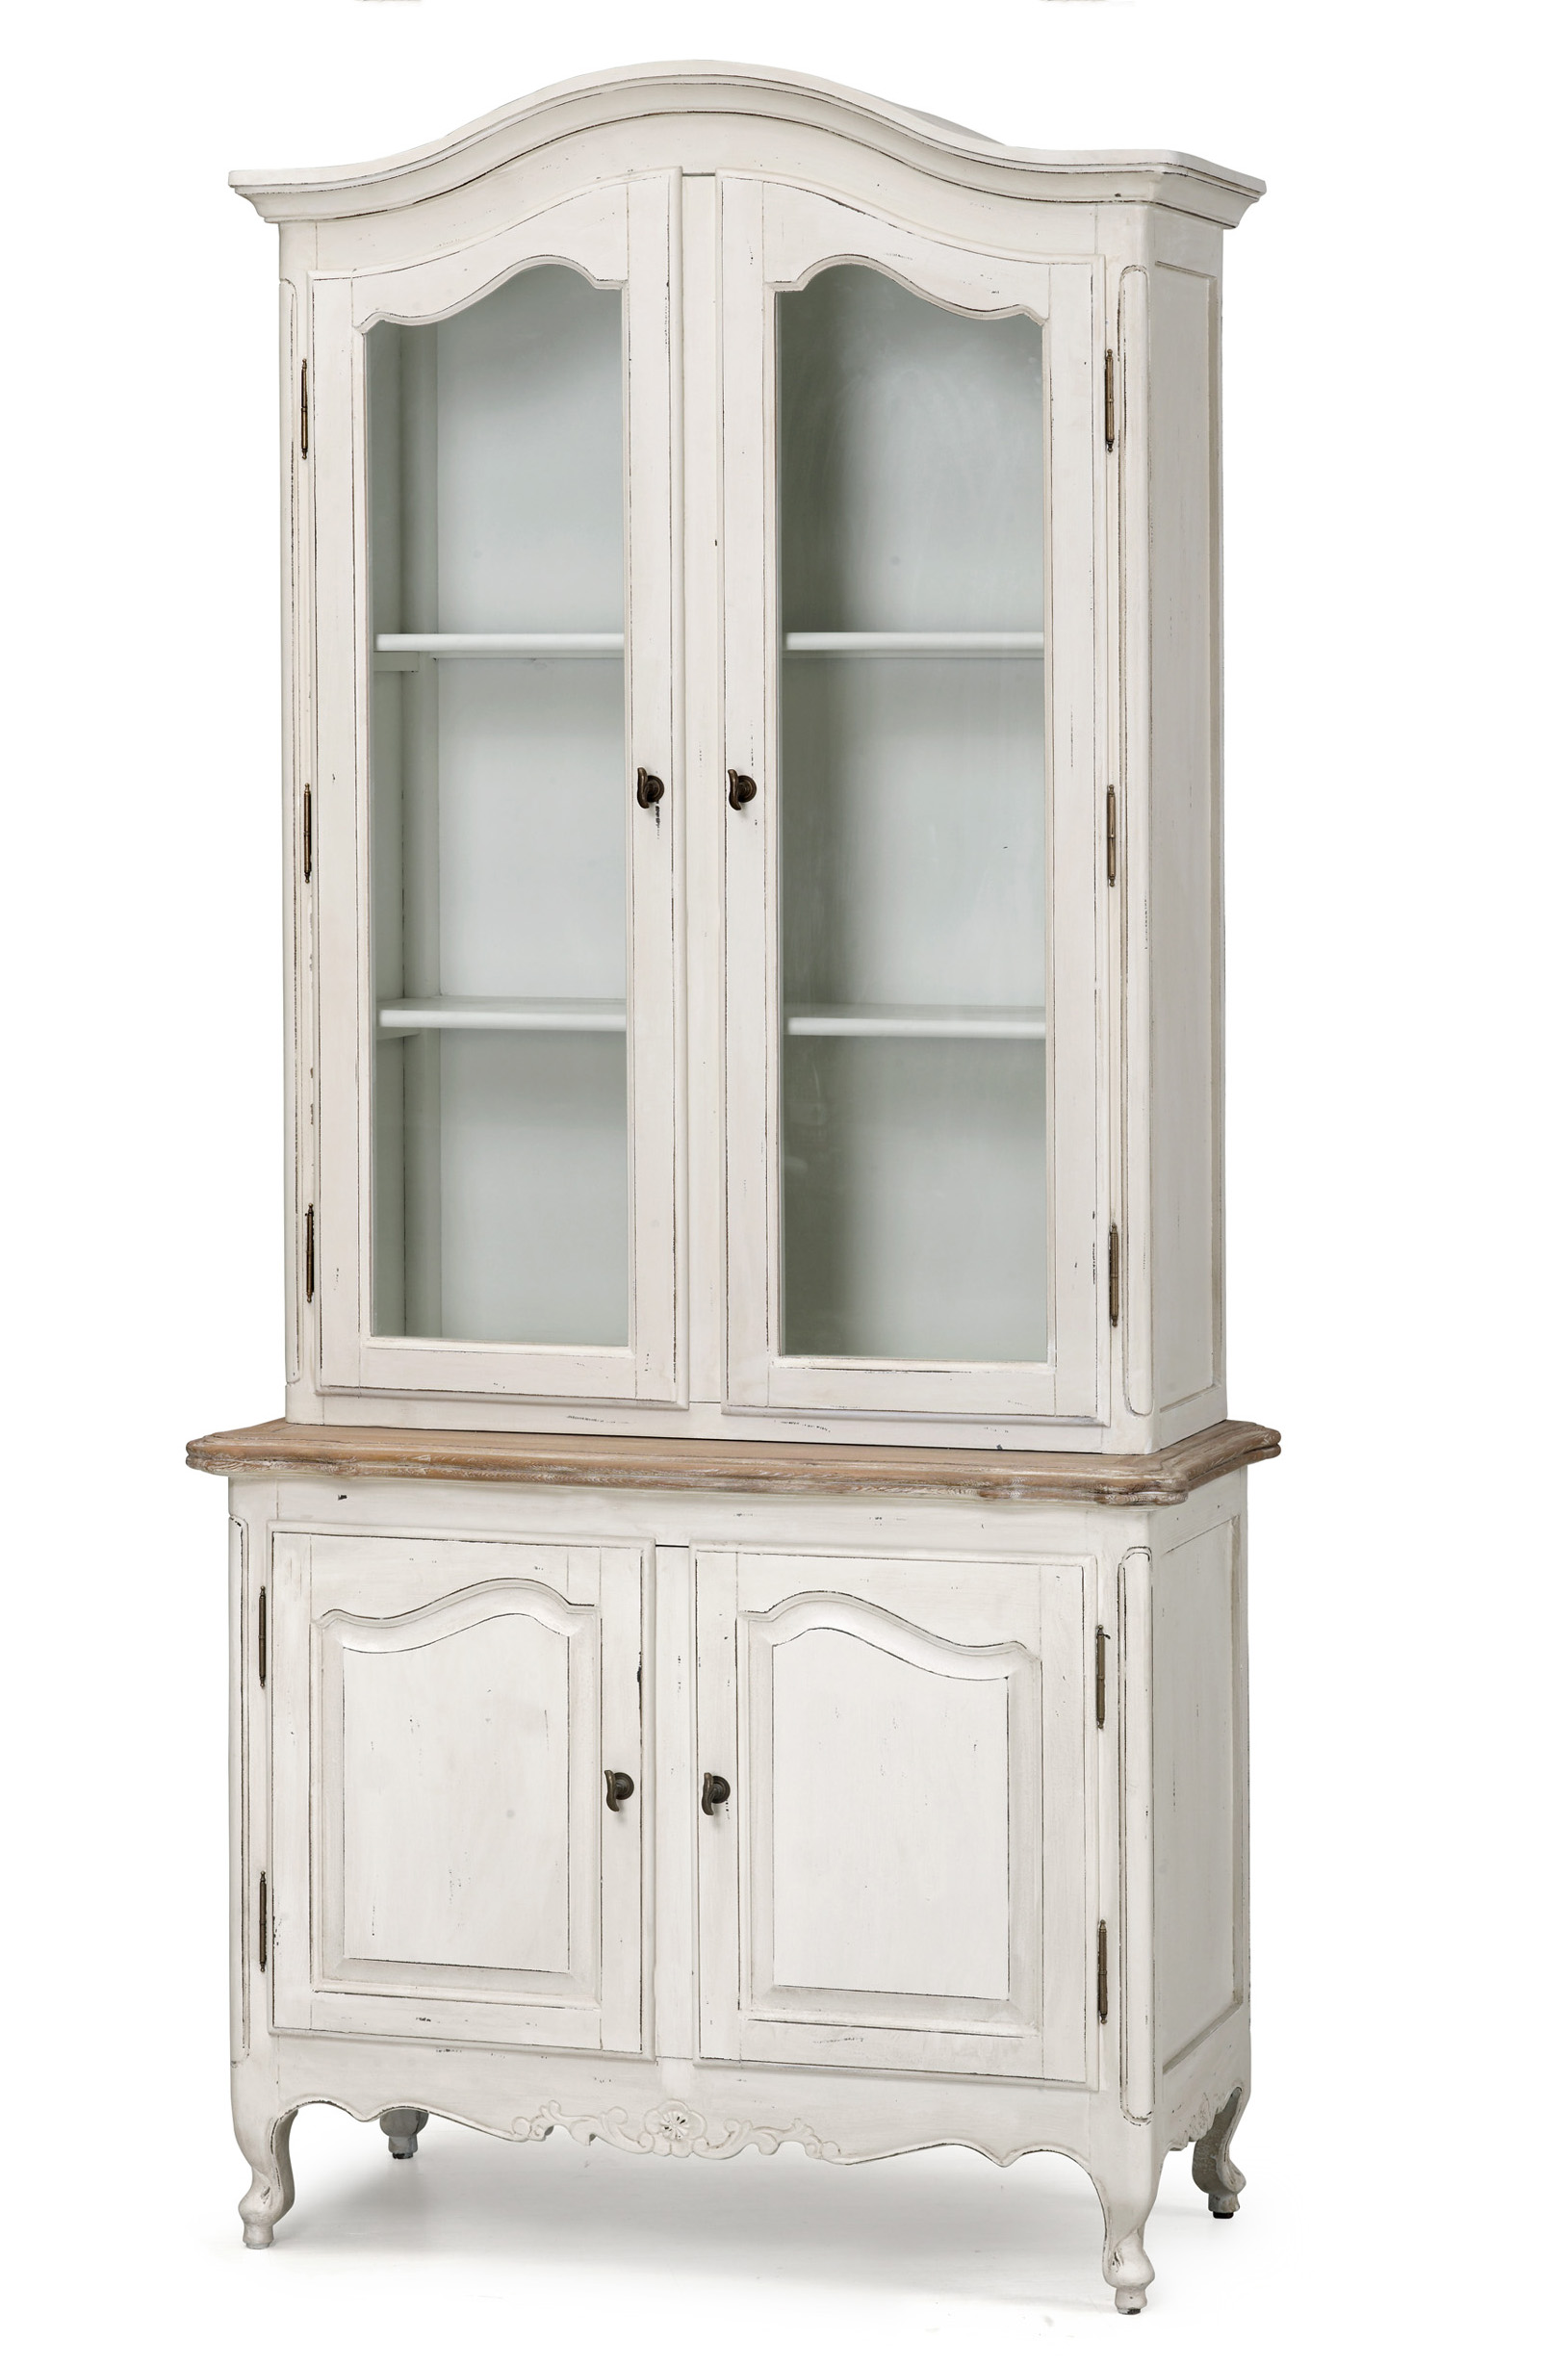 French Provincial Vintage Furniture Classic Display Cupboard...